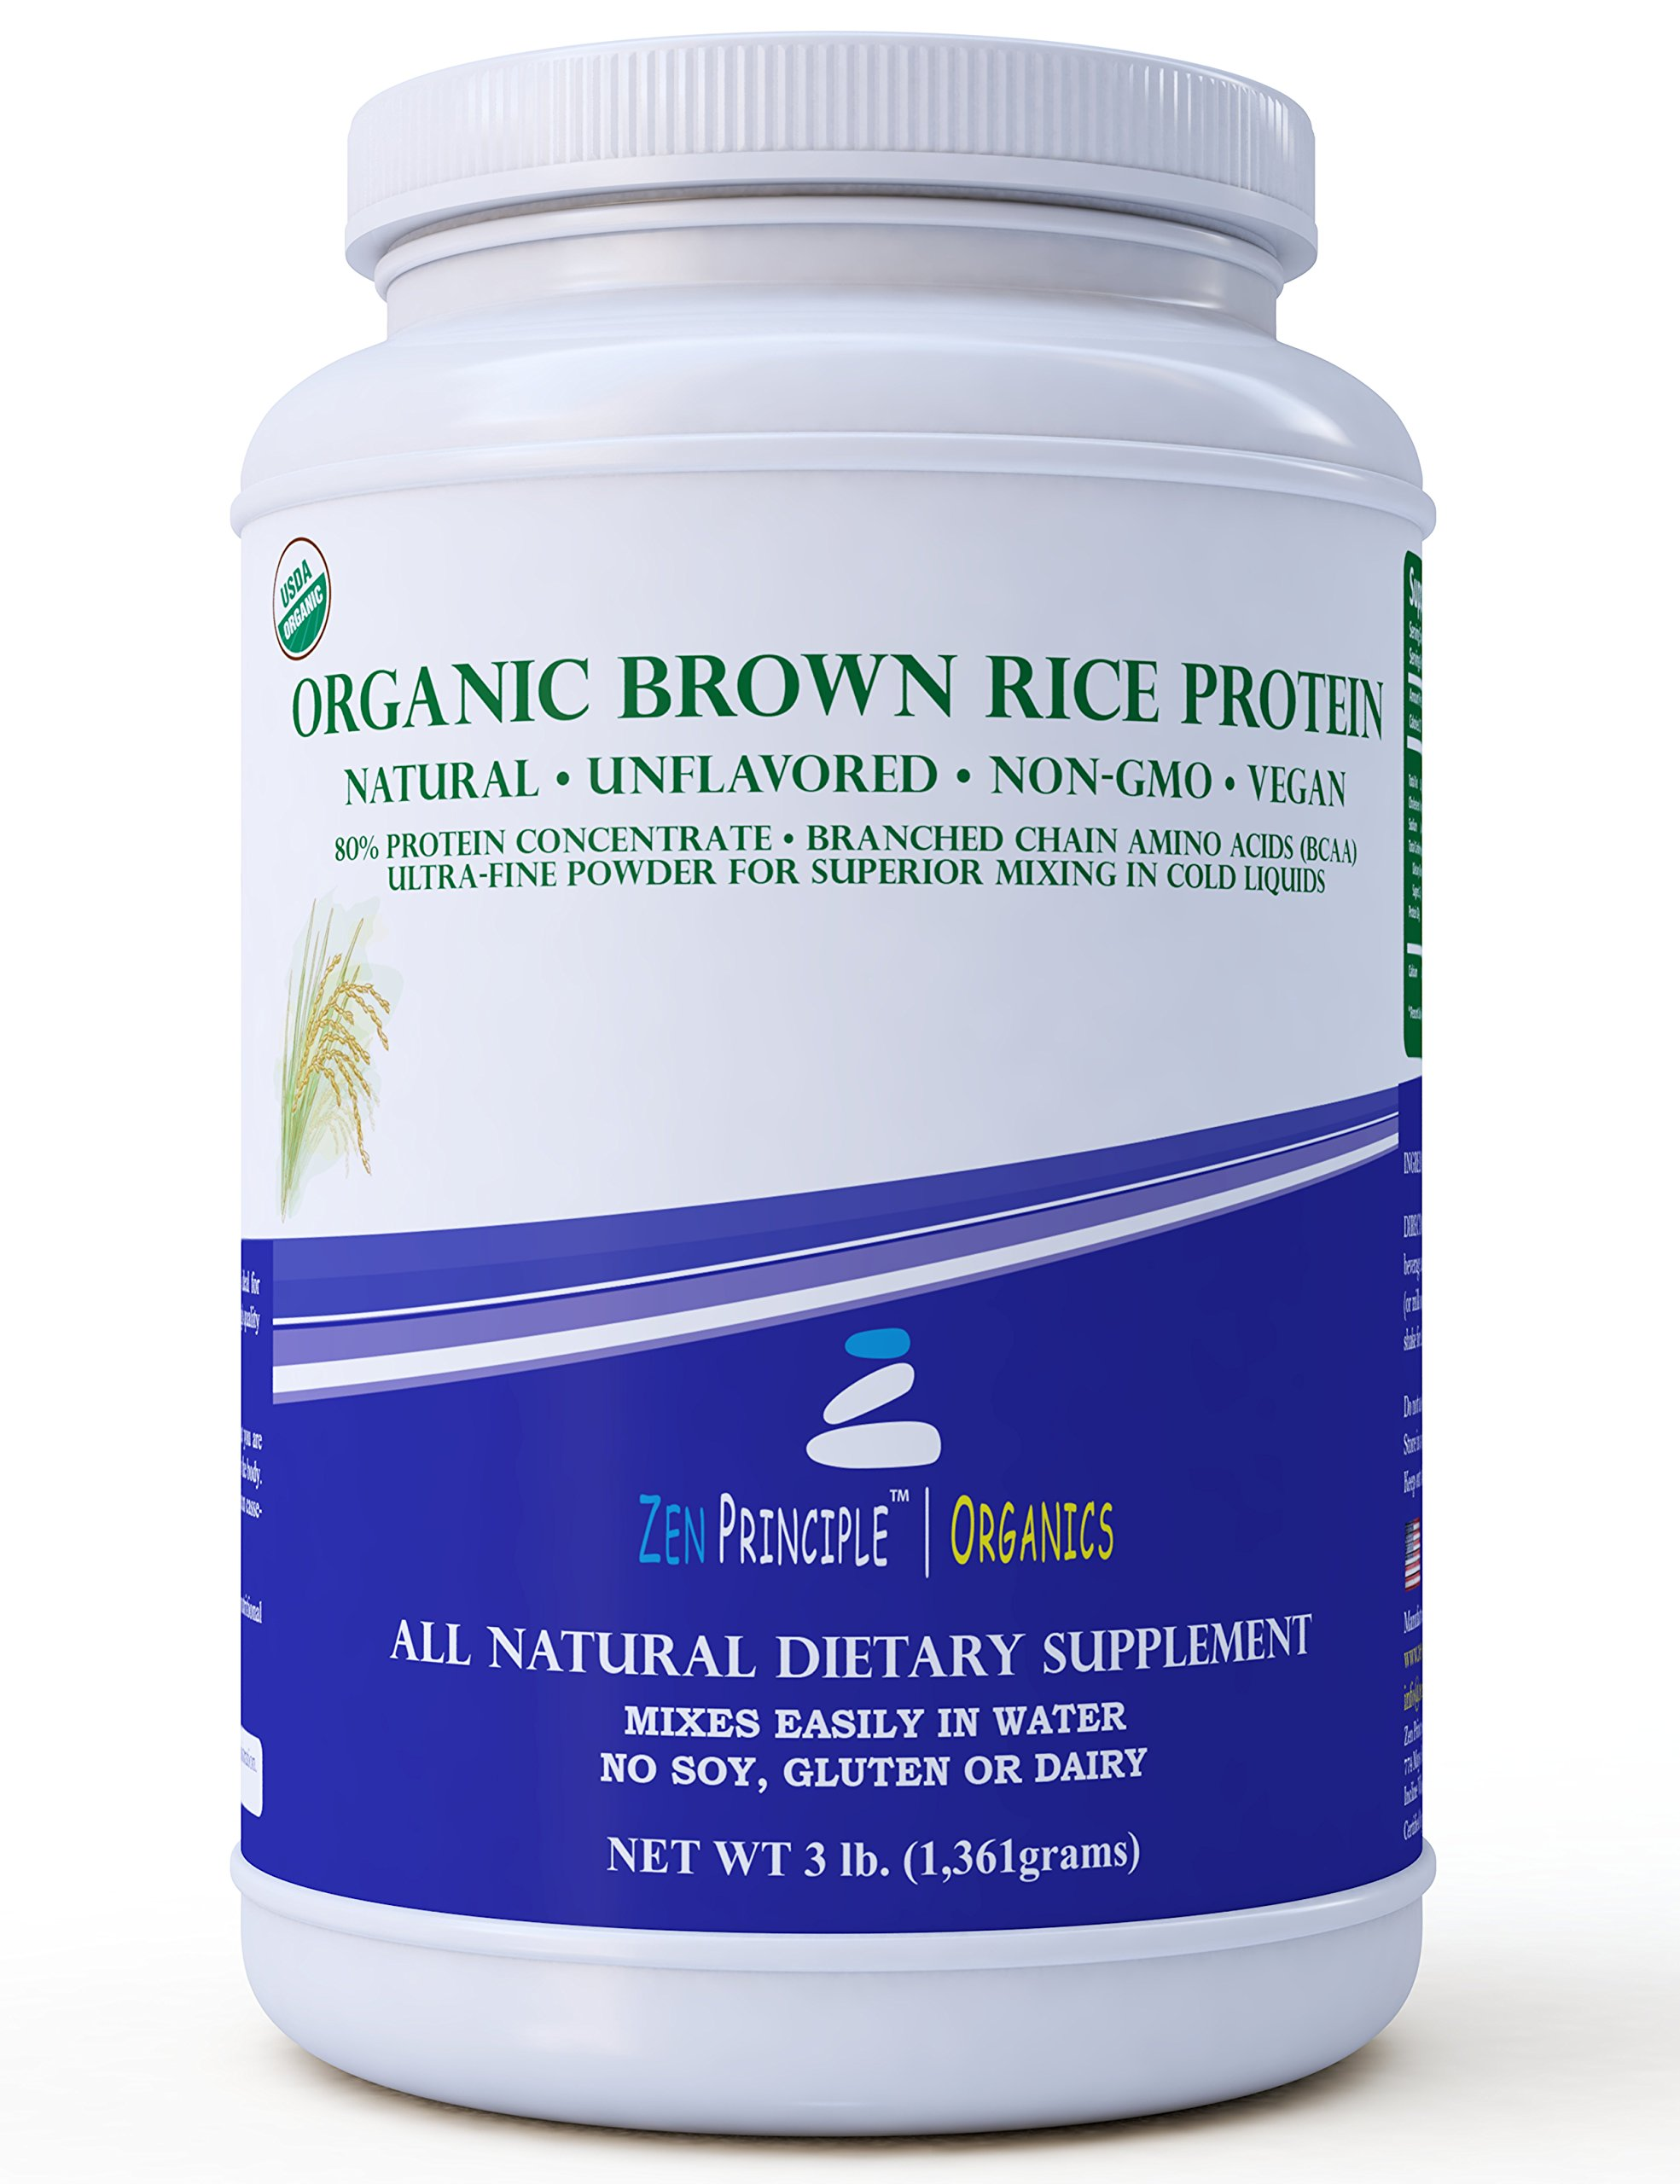 3 lb. Organic Brown Rice Protein Powder. USDA Certified. 80% Protein. No GMO, Soy or Gluten. Vegan. Full Spectrum Amino Acids (BCAA). Ultra-fine Powder Mixes Best in Drinks. by Zen Principle (Image #1)